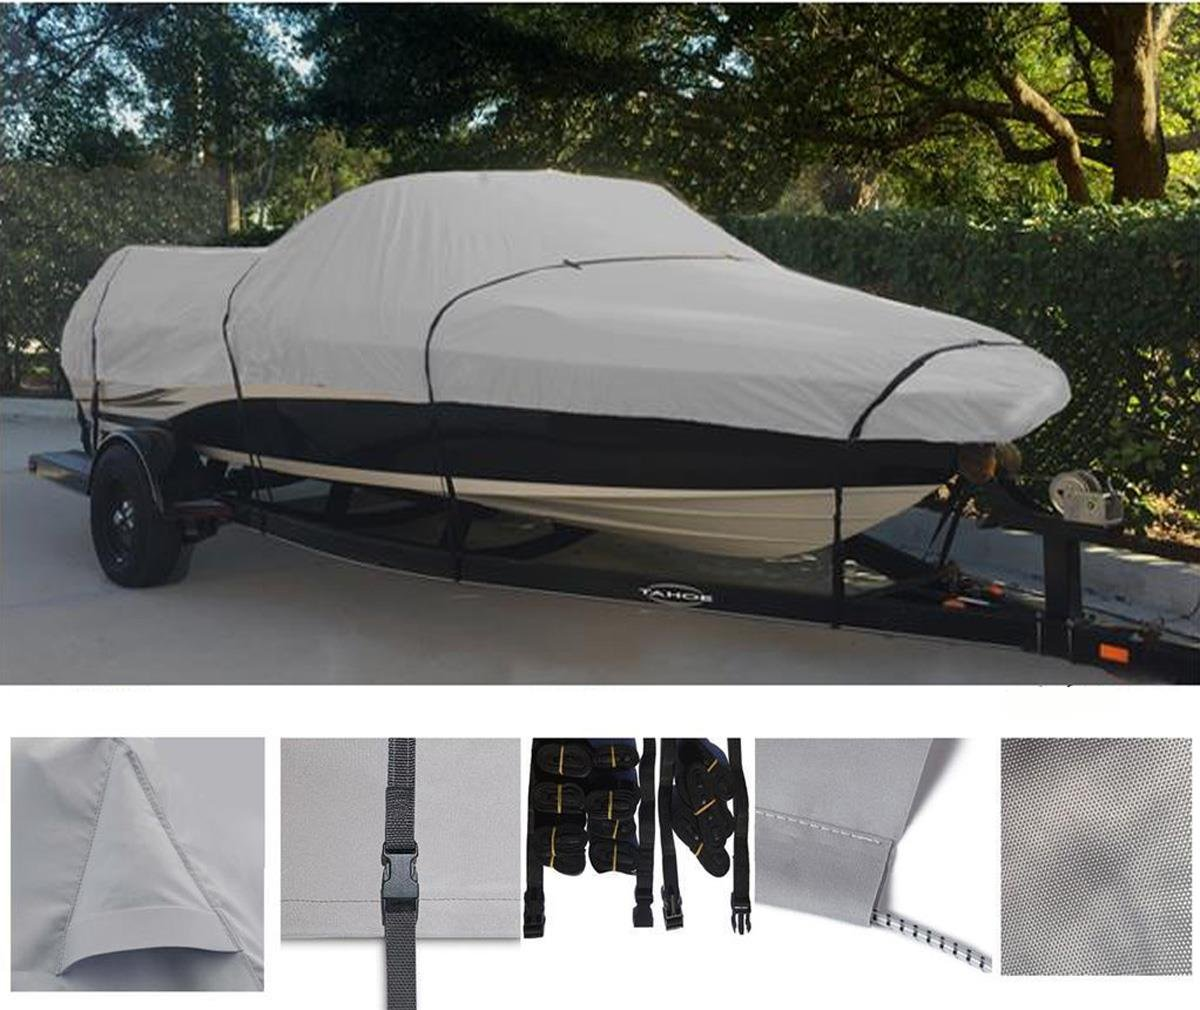 GREY, STORAGE, TRAVEL, MOORING BOAT COVER FOR SMOKER CRAFT PRO MAG 172 2006-2007 by SBU